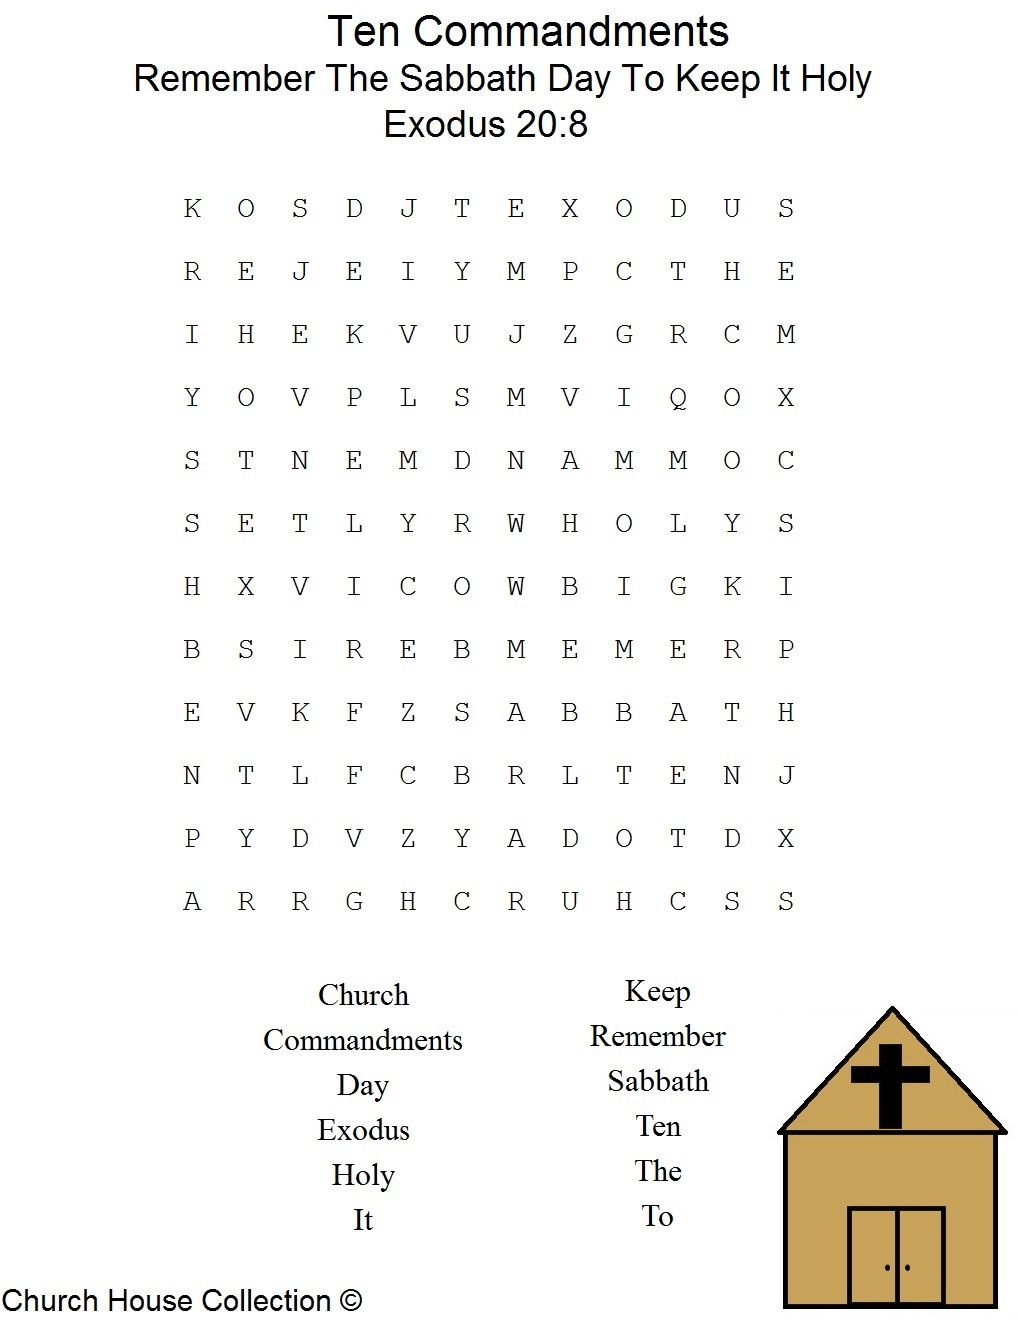 This Is A Free Printable Ten Commandments Word Find Puzzle For The | 10 Commandments Printable Worksheets